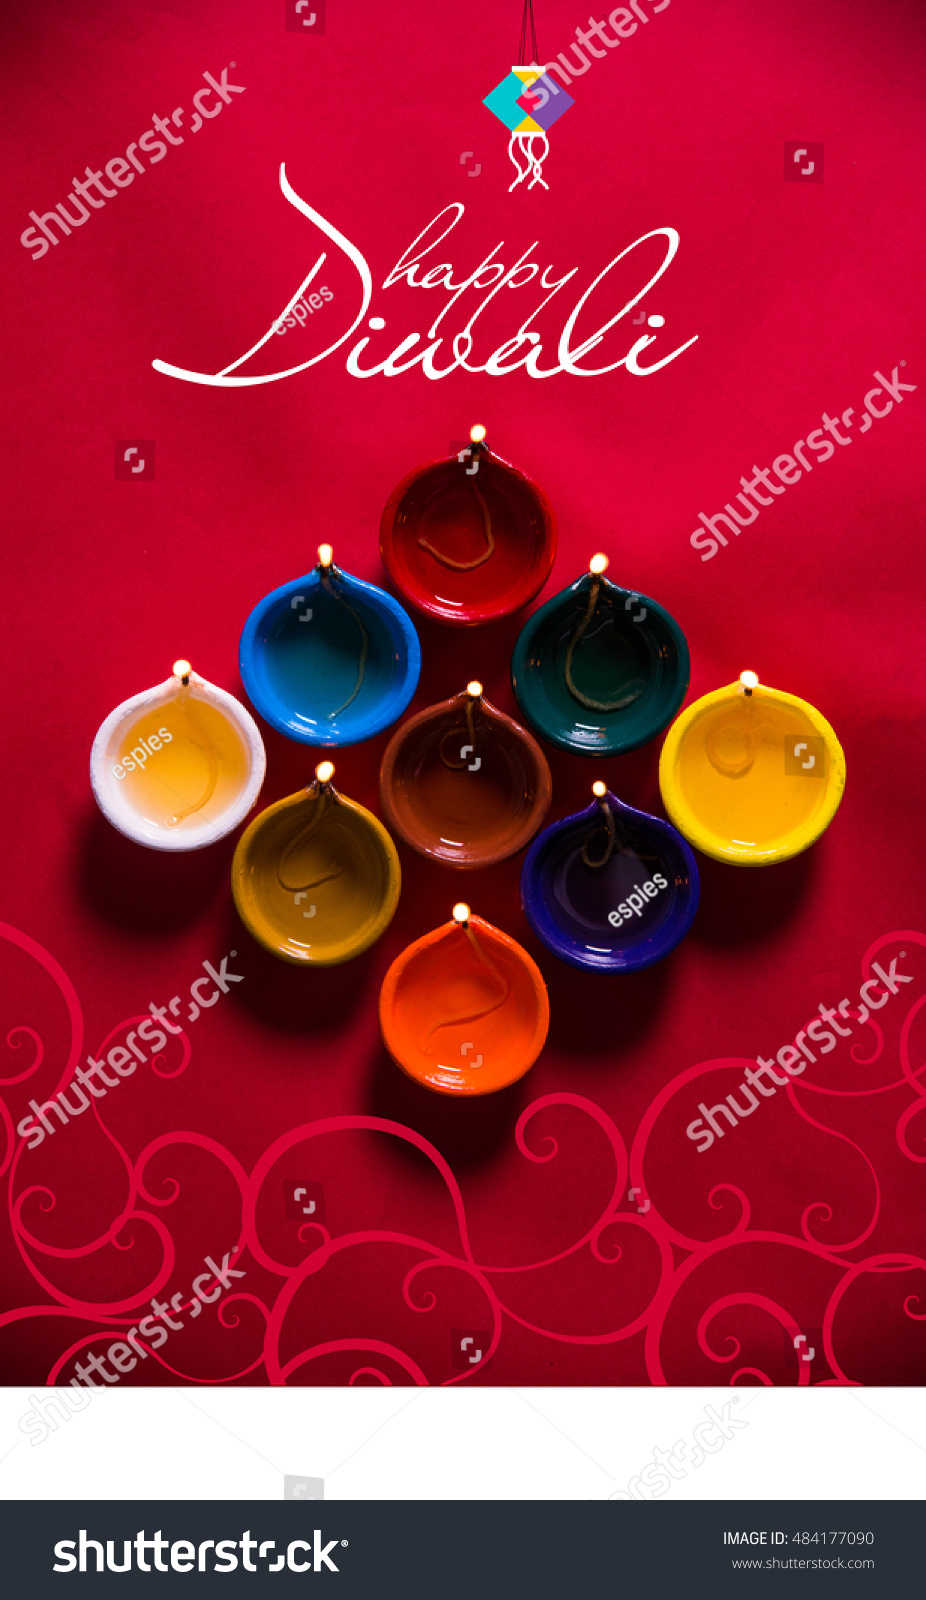 Happy Diwali Happy Deepavali Greeting Card Stock Photo Edit Now